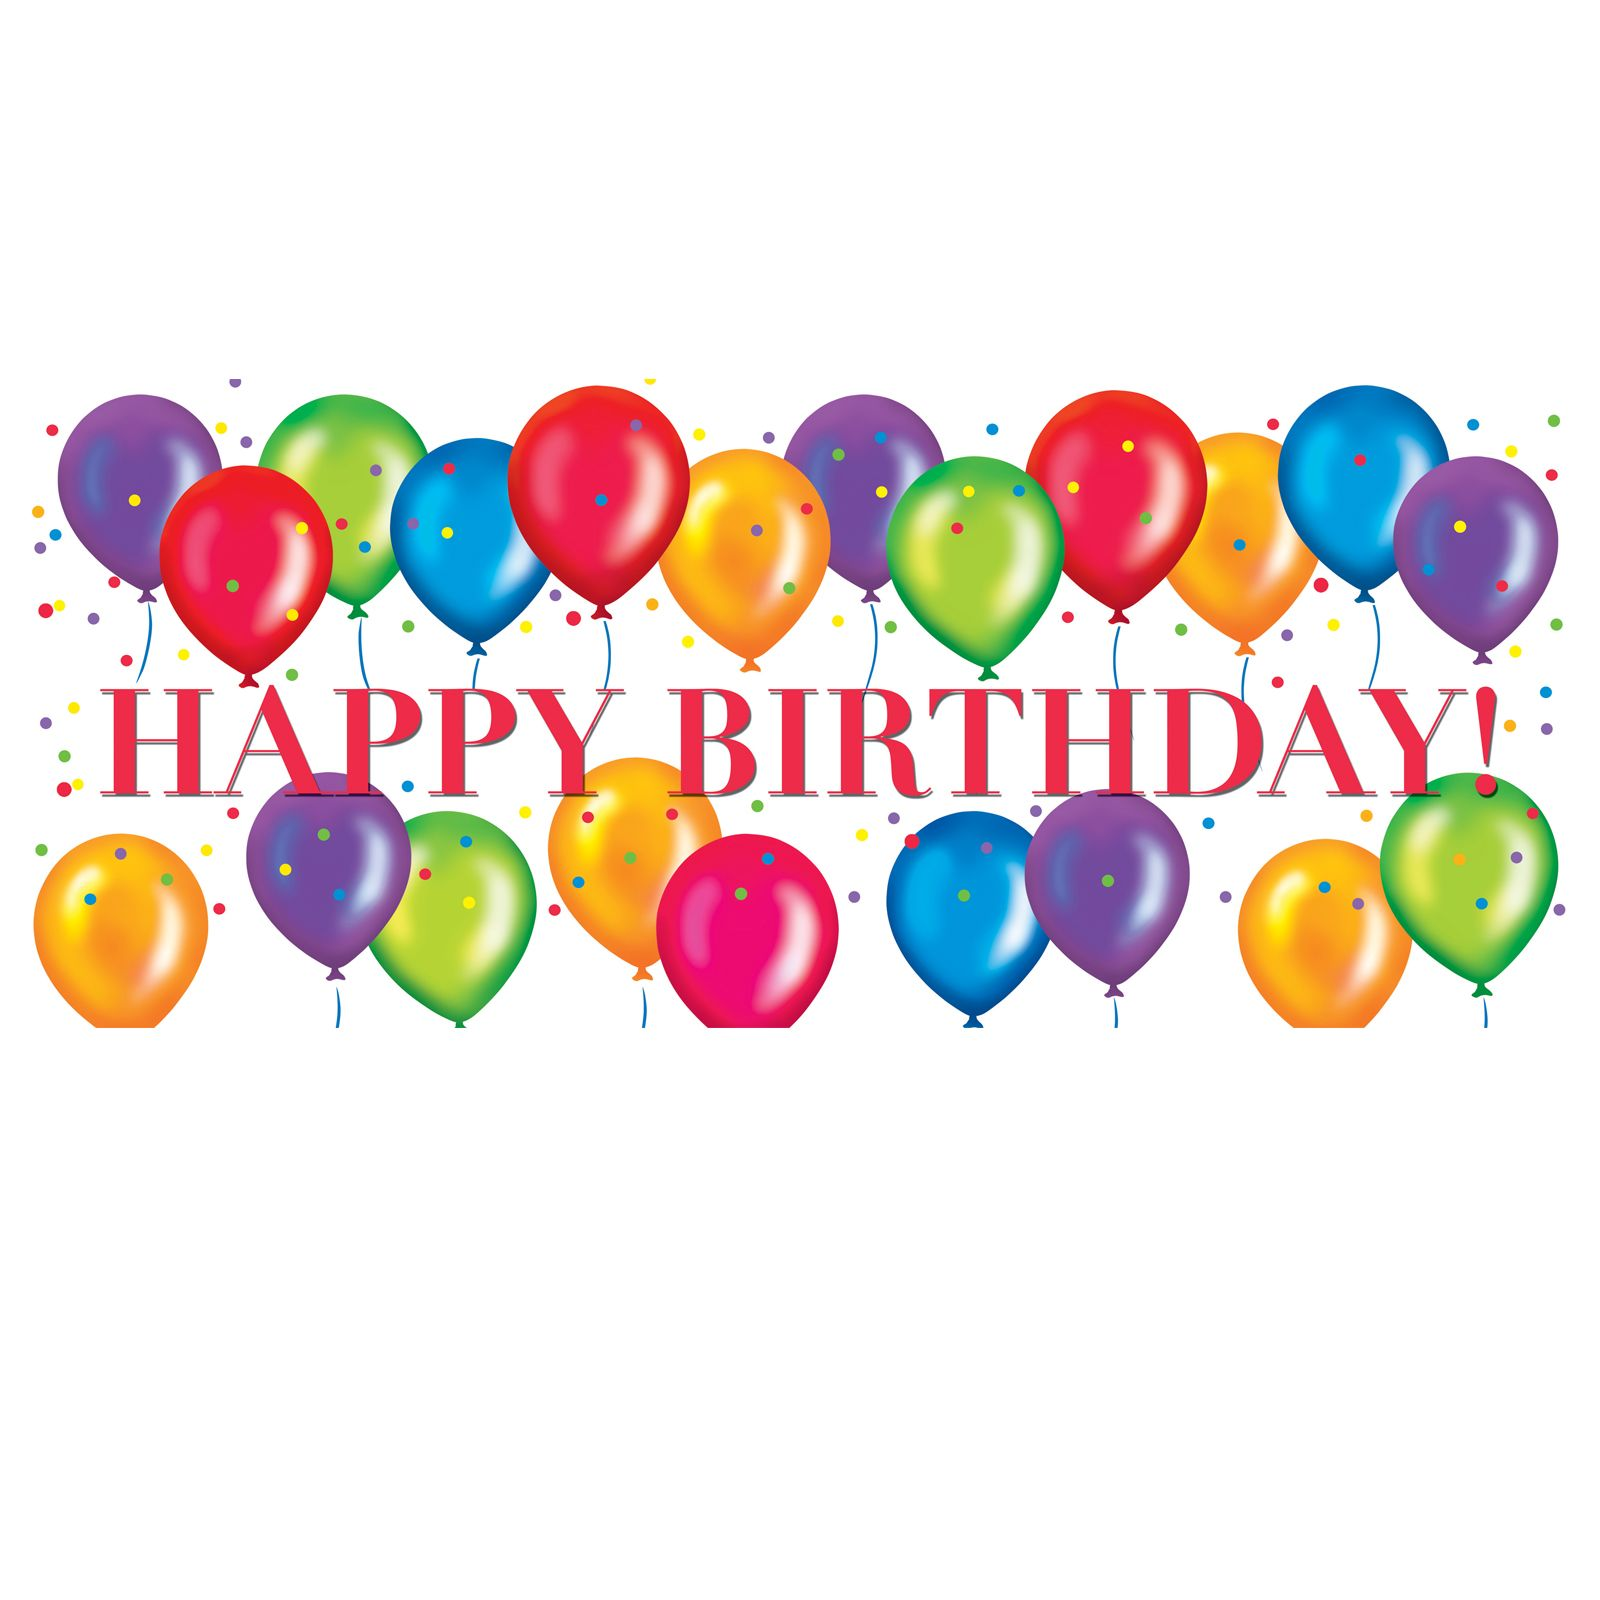 Happy graphics freebies . Free birthday clipart images